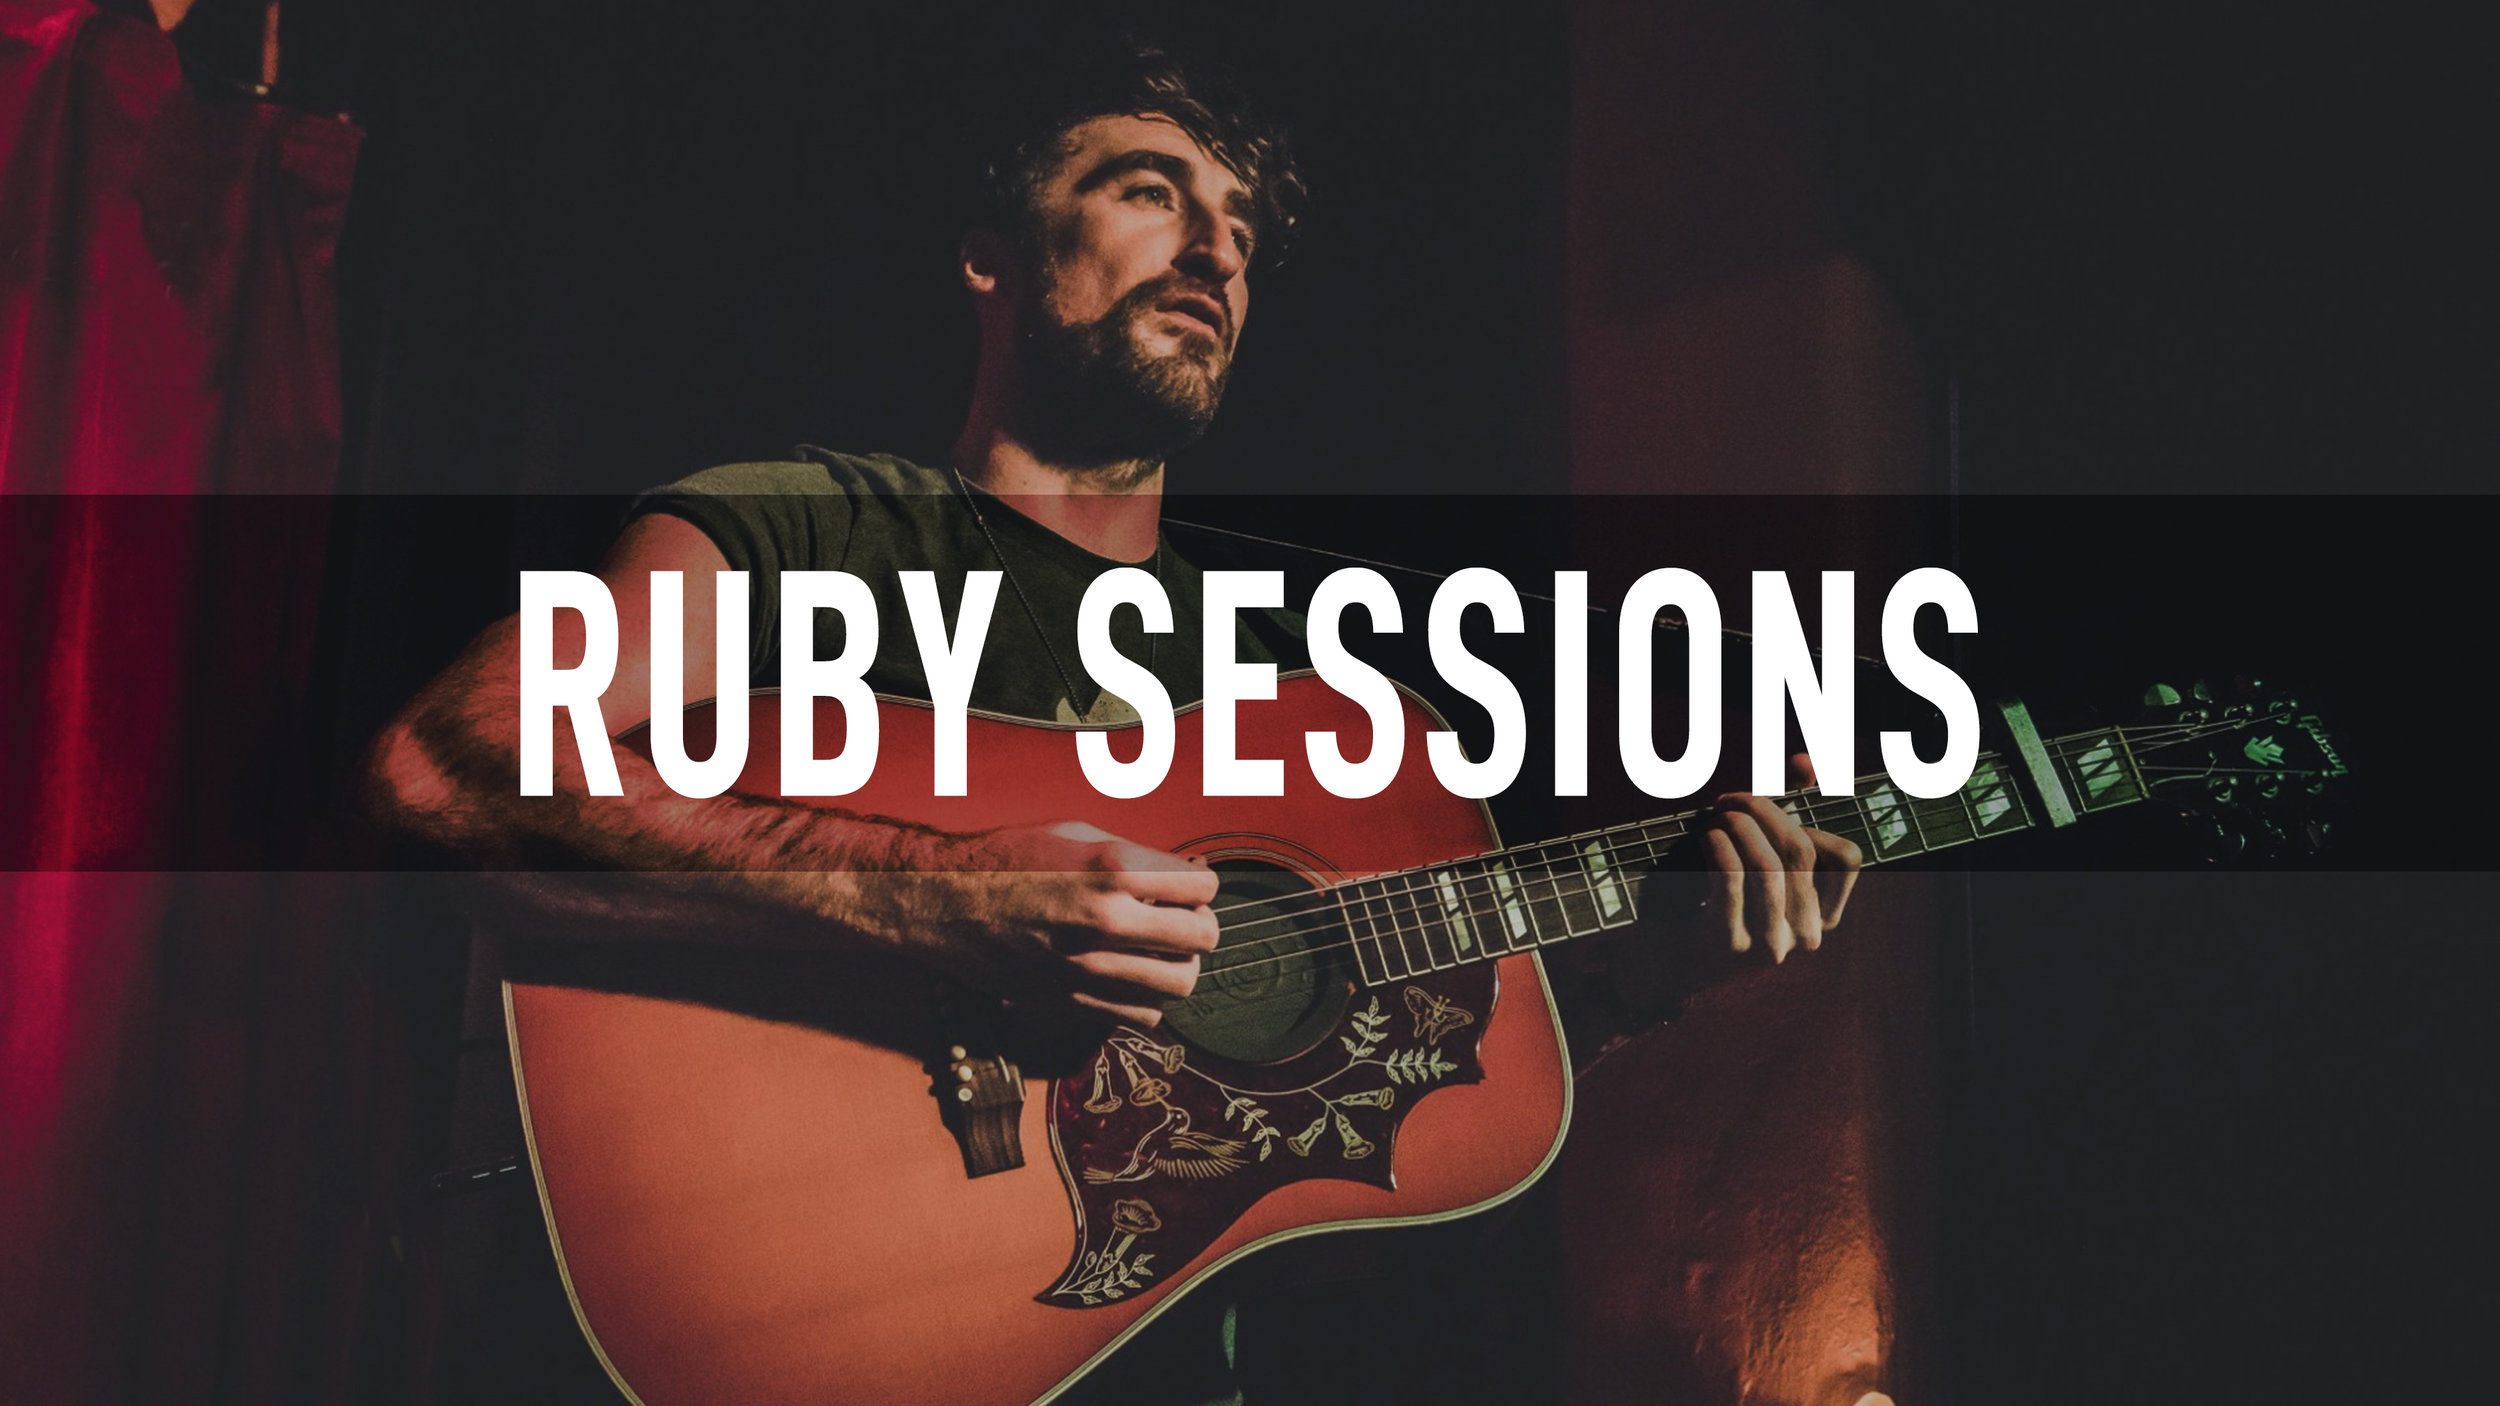 RUBY SESSIONS